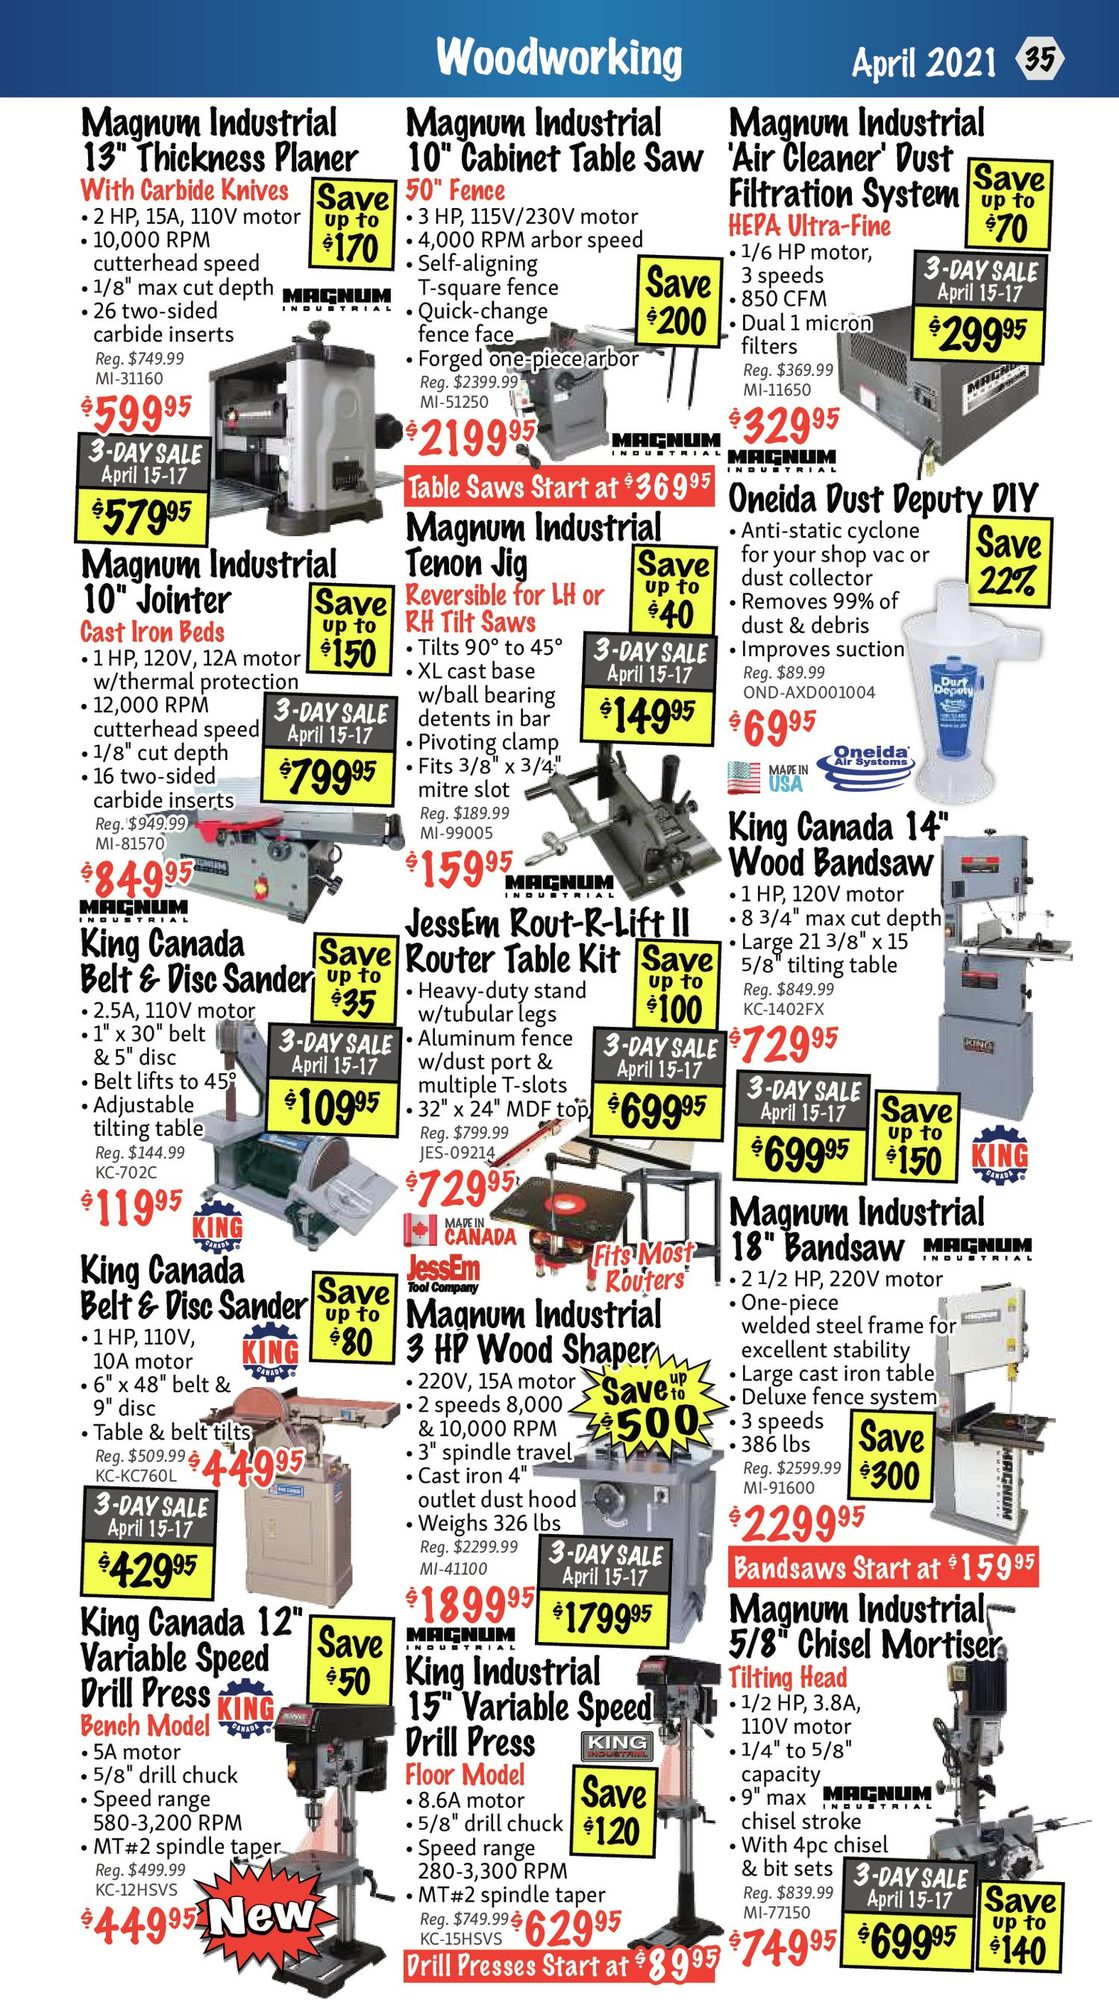 KMS Tools - Hand Tools, Air Tools & Compressor Sale - Page 35